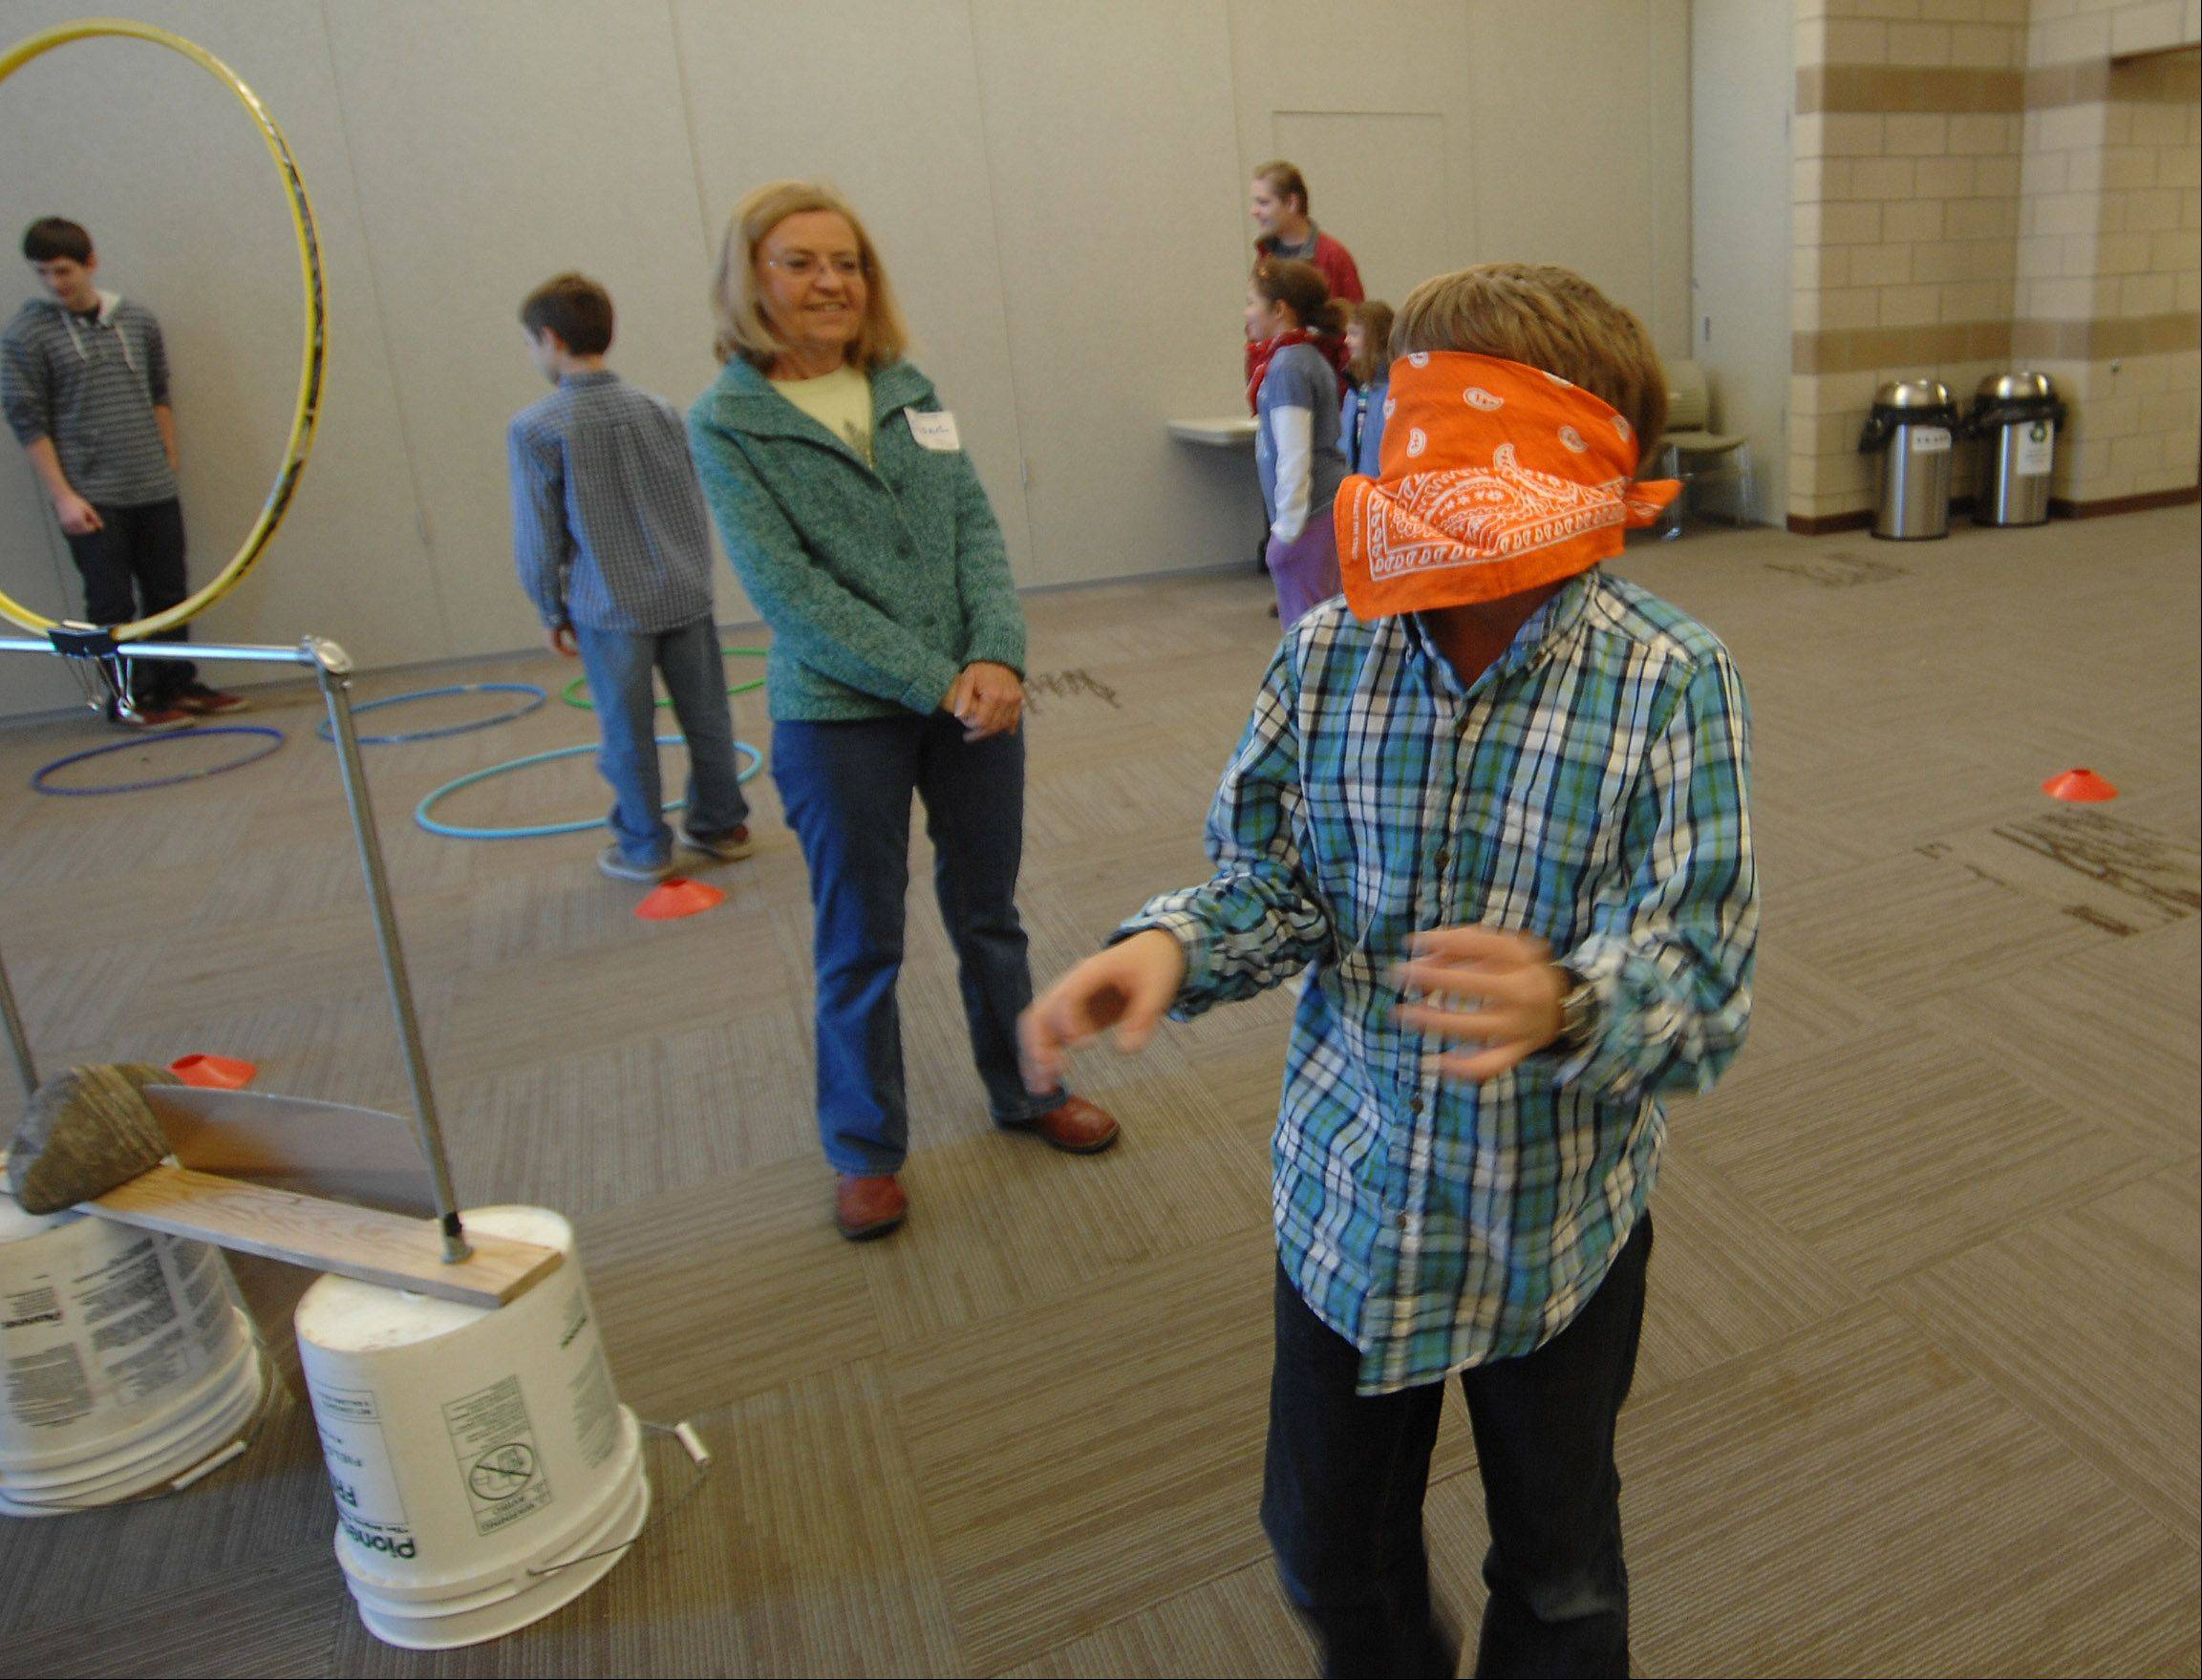 Shawn Costanzi, 9, of Sugar Grove, bumps his way through an activity to learn how to use more than the sense of vision to find objects at the Hickory Knolls Discovery Center in St. Charles Sunday. It was part of an afternoon of events focused on animal groups and activities.